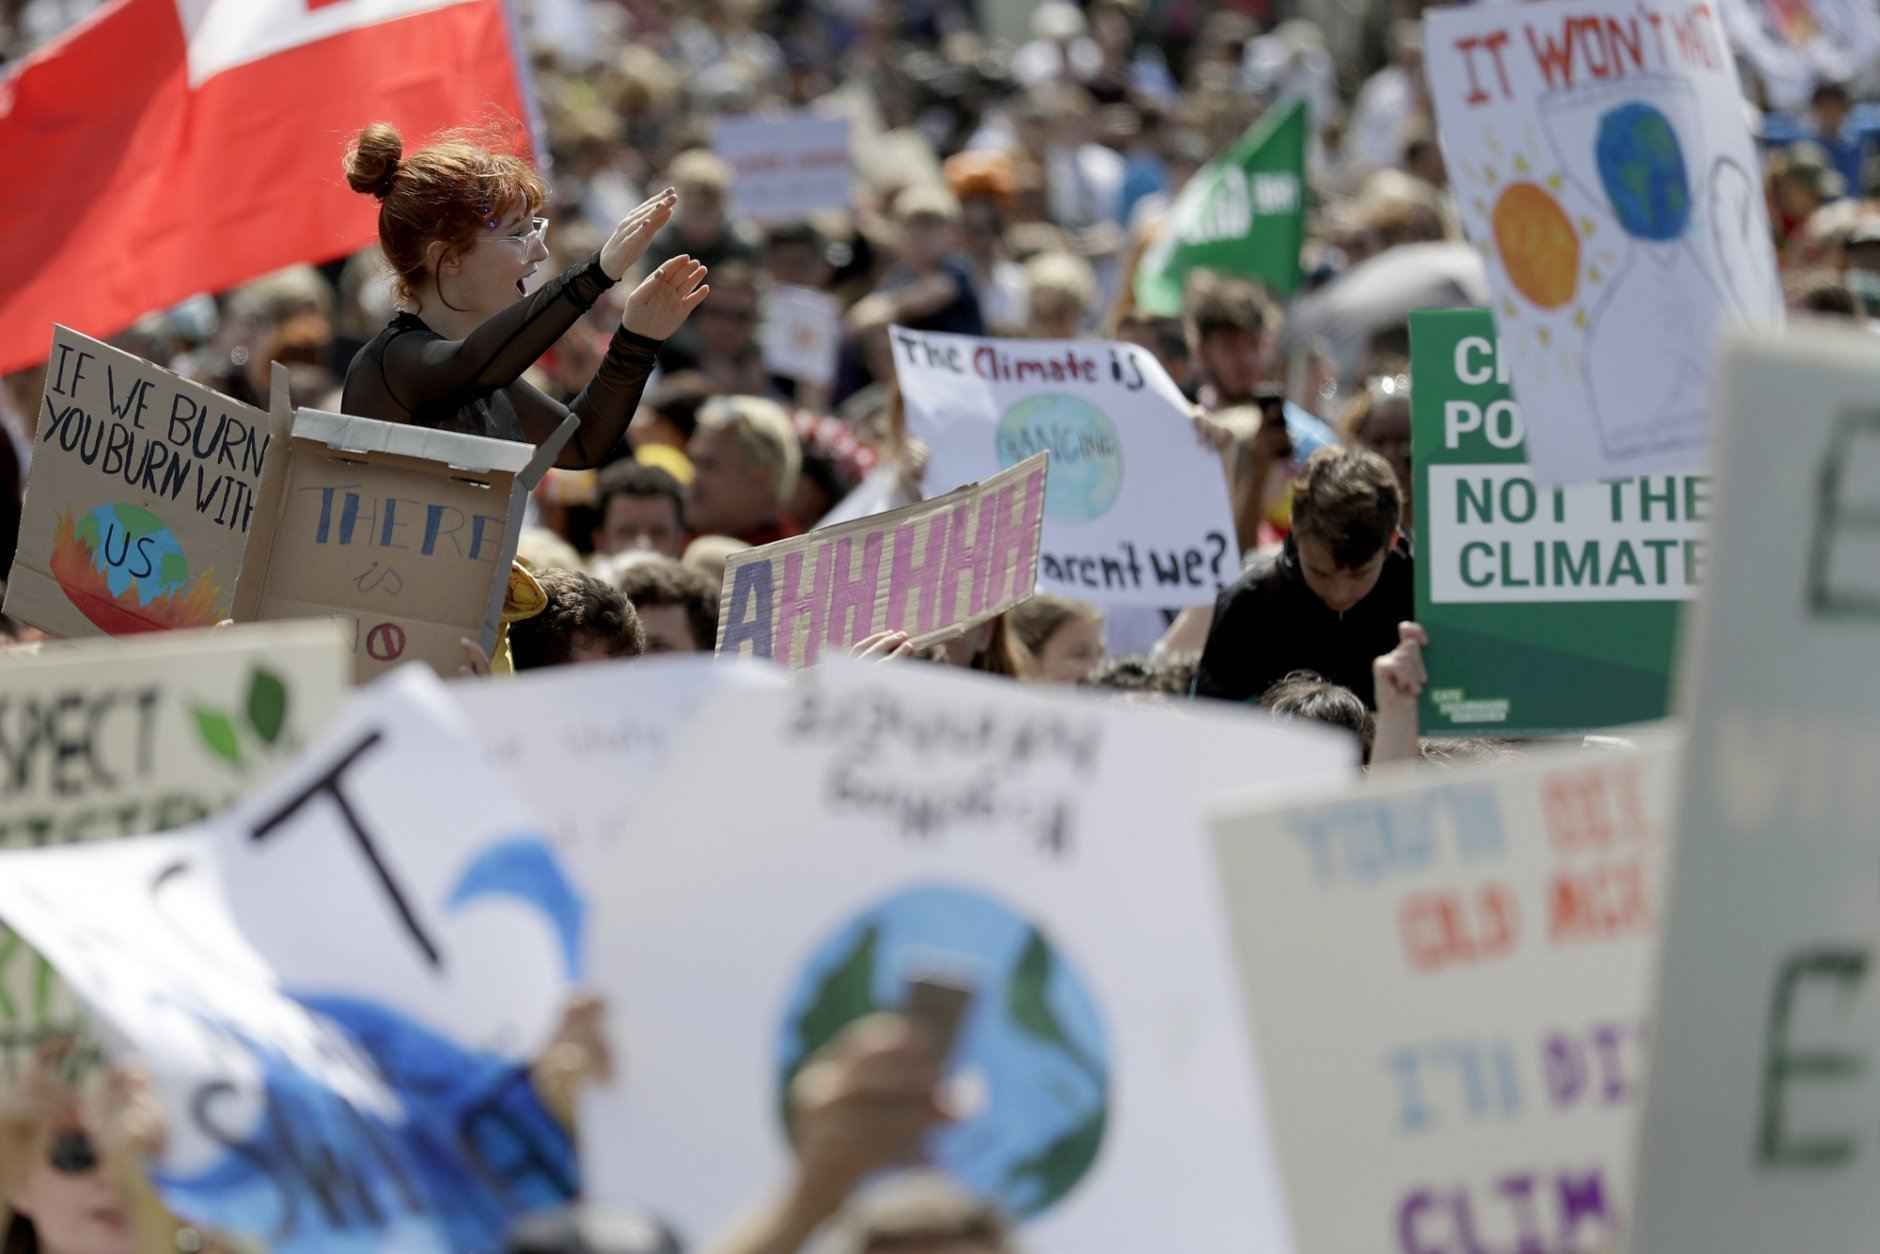 """A woman is lifted above the crowd as thousands of protestors, many of them school students, gather in Sydney, Friday, Sept. 20, 2019, calling for action to guard against climate change. Australia's acting Prime Minister Michael McCormack has described ongoing climate rallies as """"just a disruption"""" that should have been held on a weekend to avoid inconveniencing communities. (AP Photo/Rick Rycroft)"""